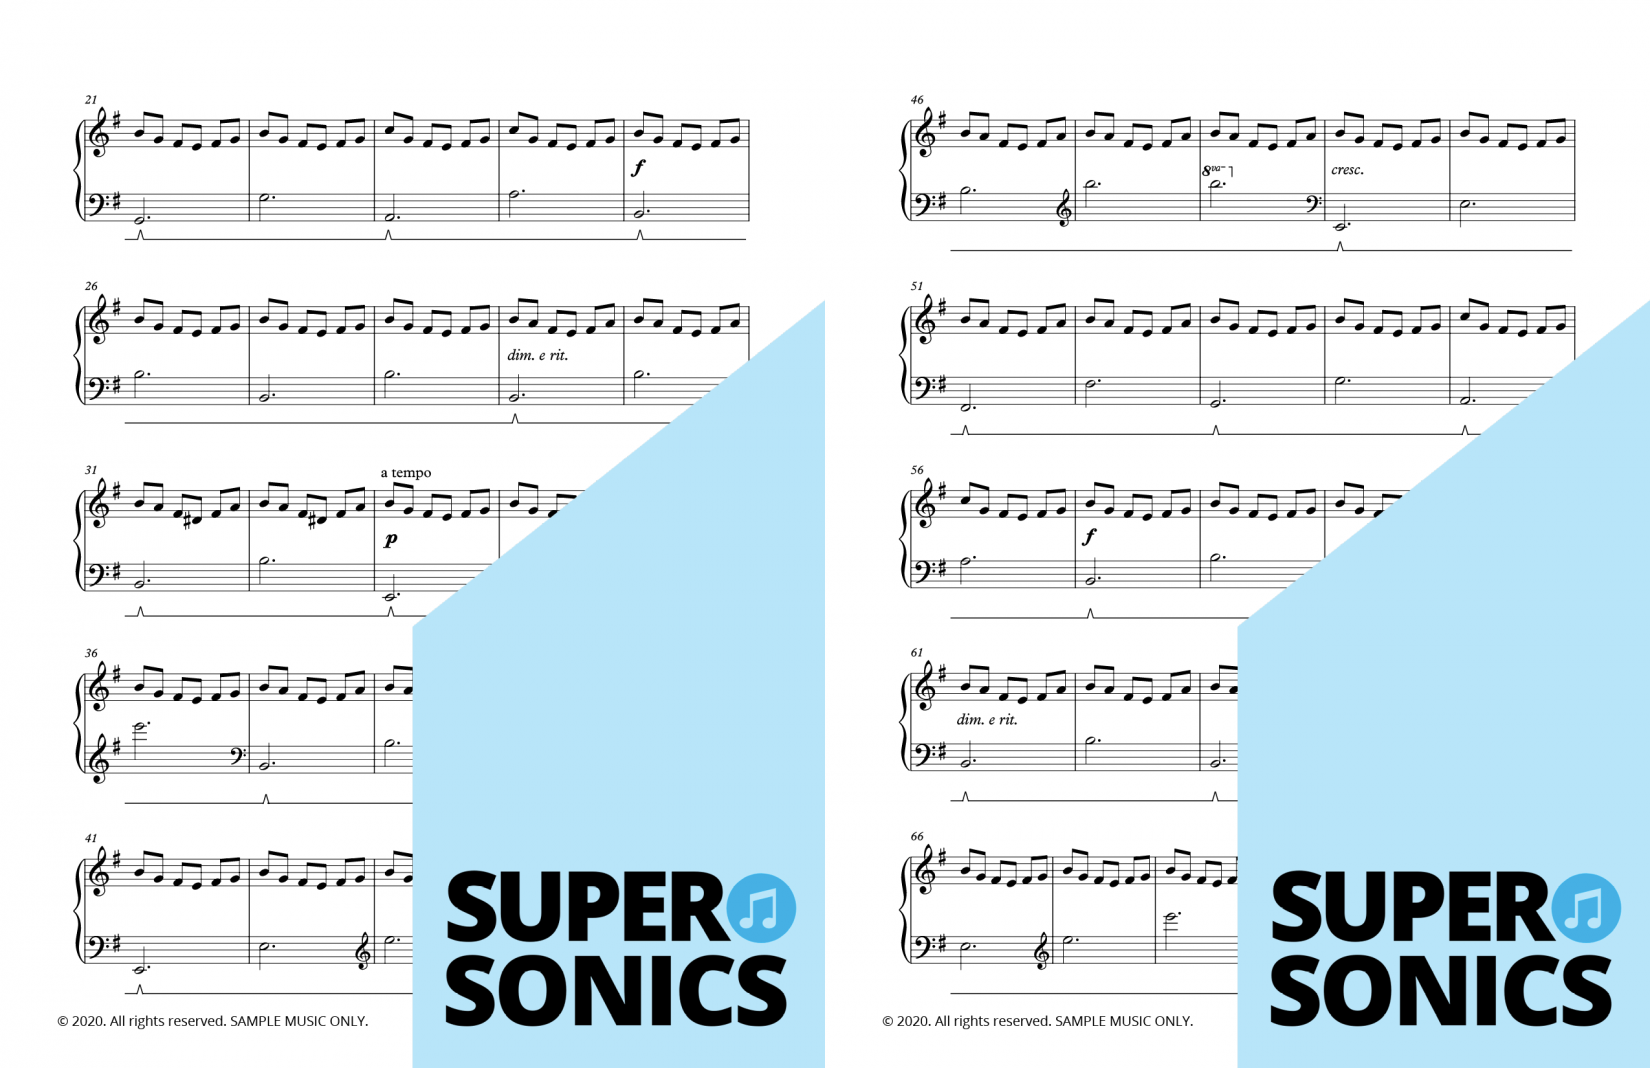 Supersonics Piano Method Level 4 The Lake sample